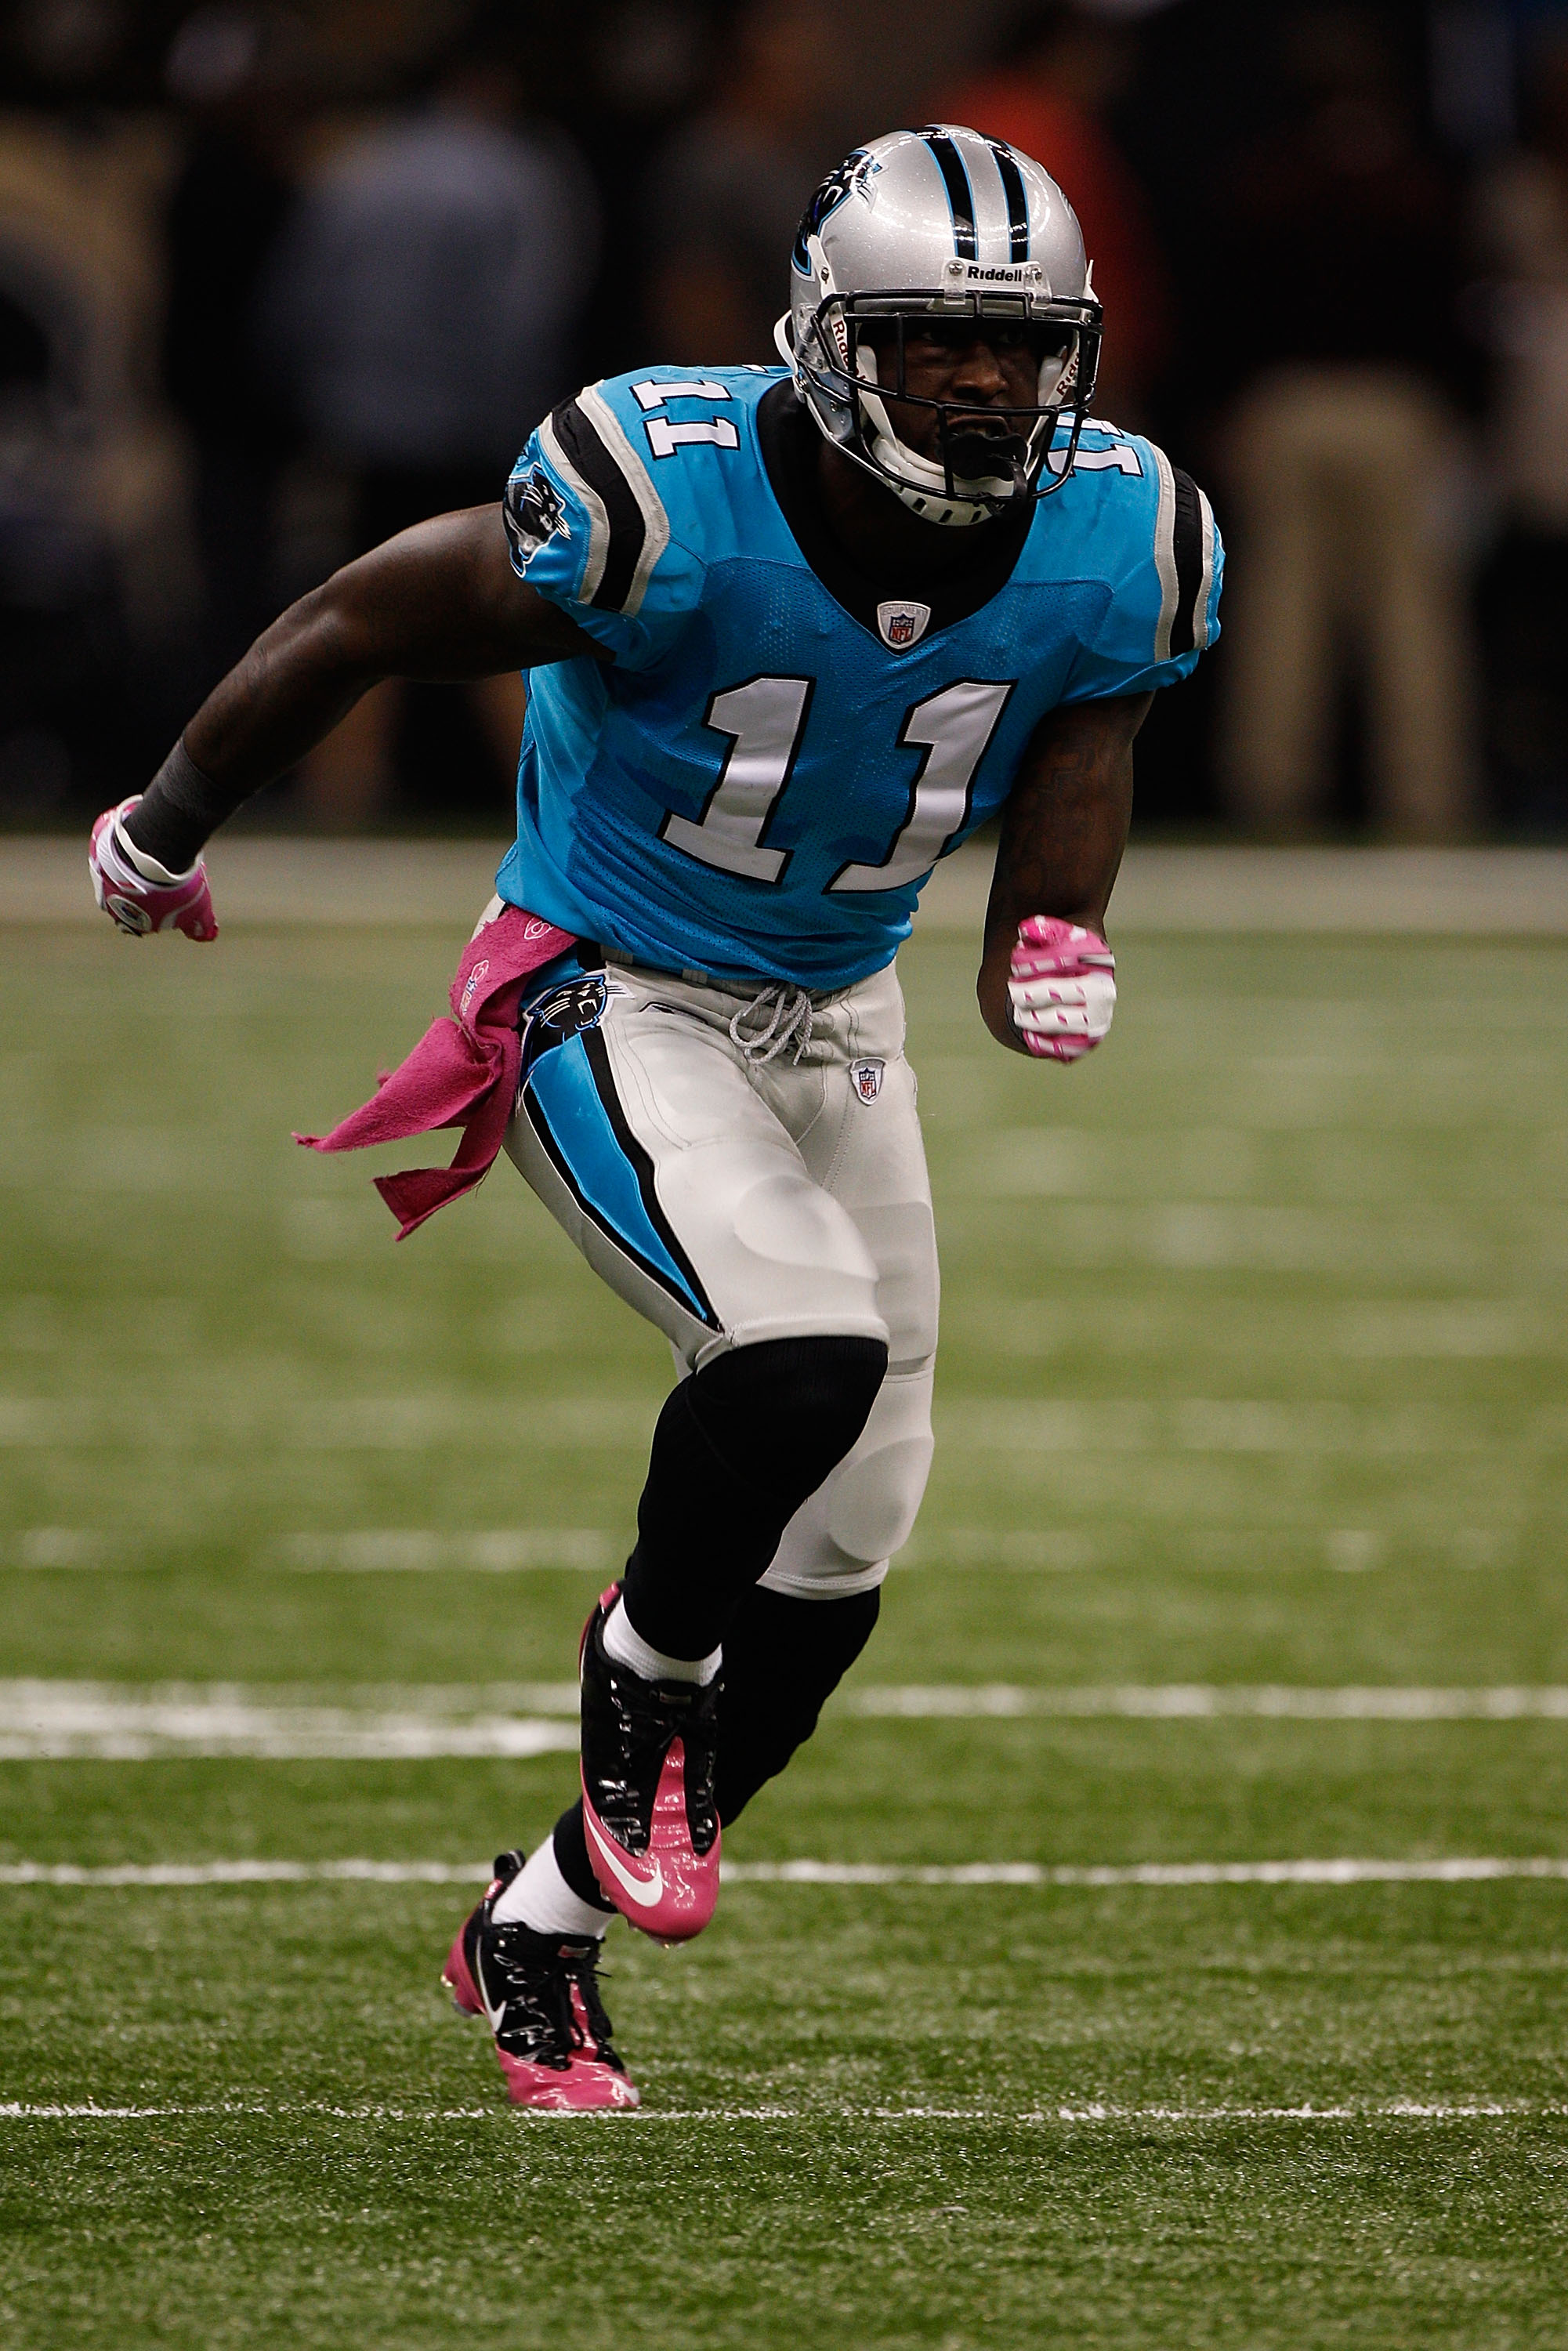 NEW ORLEANS - OCTOBER 03:  Brandon LaFell #11 of the Carolina Panthers in action during the game against the New Orleans Saints at the Louisiana Superdome on October 3, 2010 in New Orleans, Louisiana.  (Photo by Chris Graythen/Getty Images)